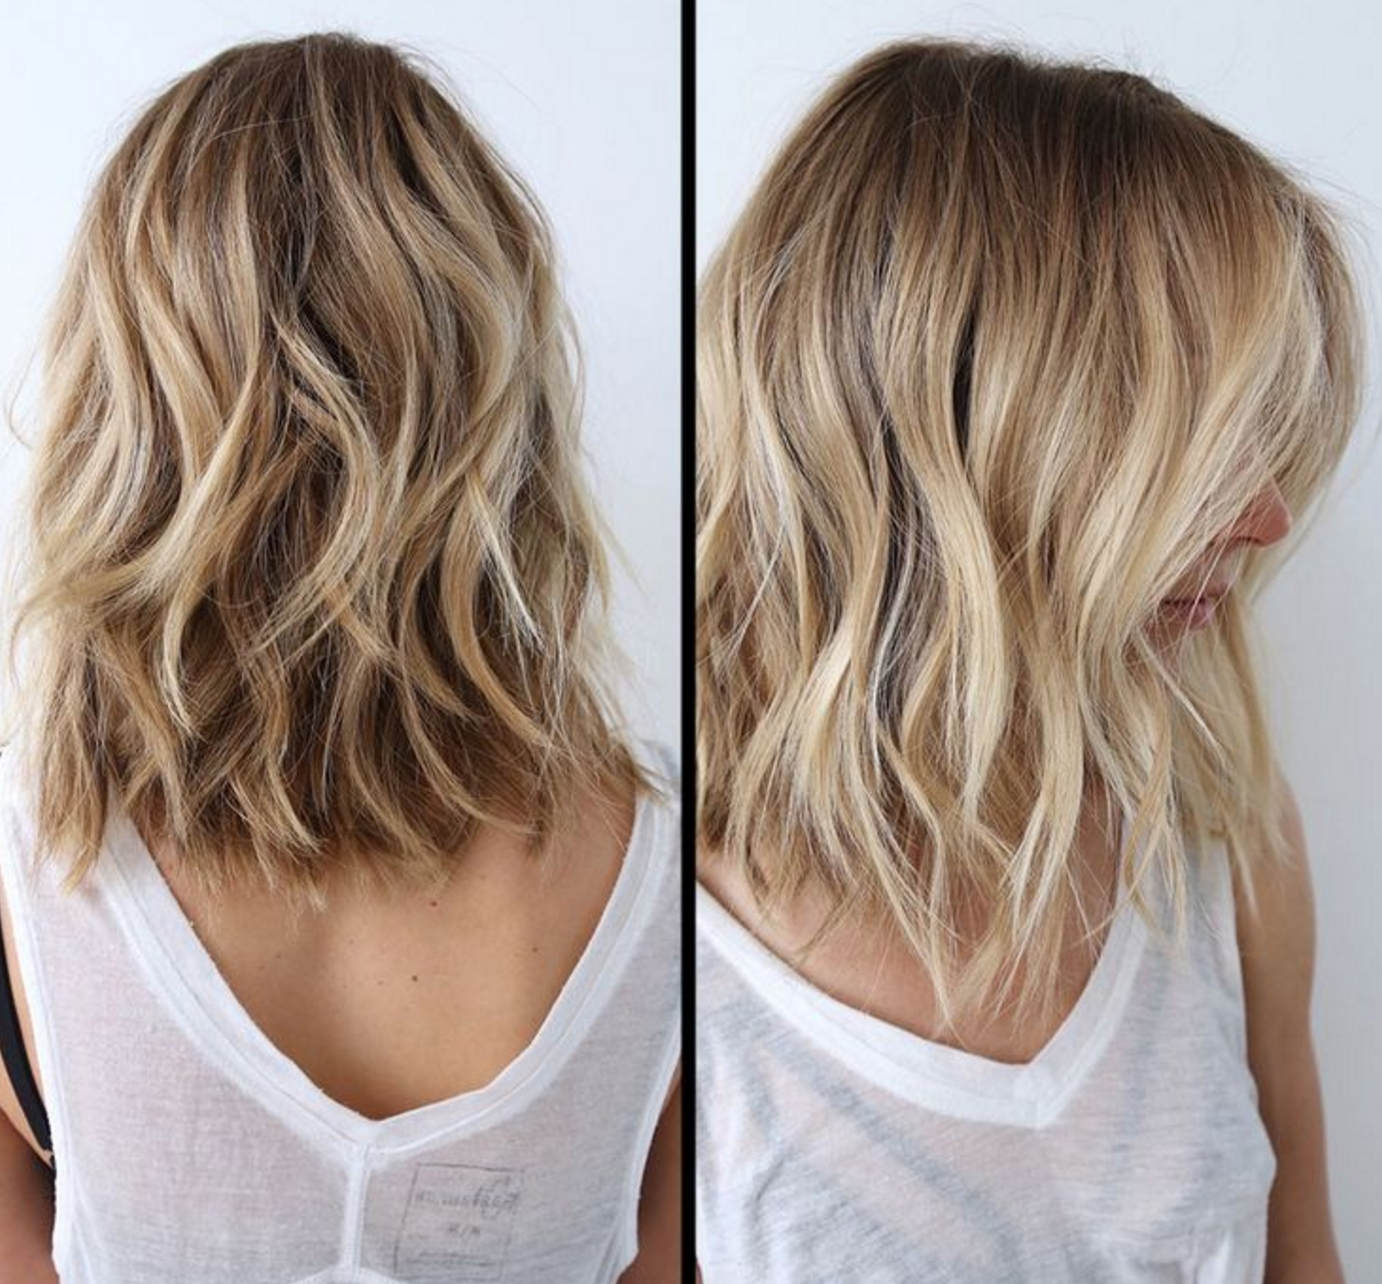 Haircut Ideas Regarding Well Known Long Bob Blonde Hairstyles With Babylights (View 8 of 20)